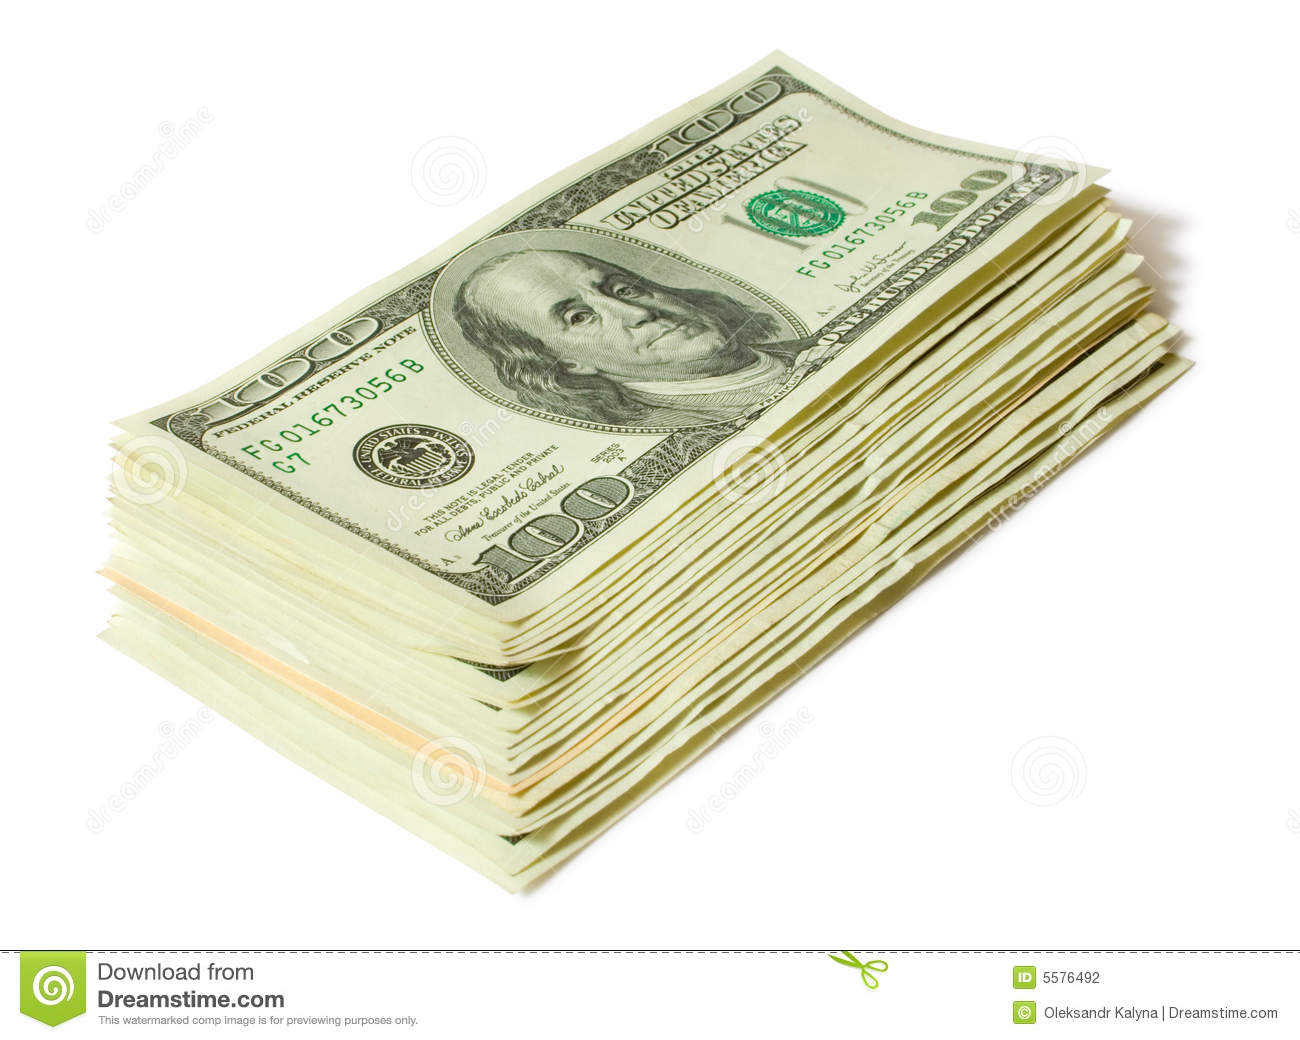 money concept Contact us safe money concepts 201 north main street unit 1 port byron, il 61275 mail & delivery 2319 woodhaven lane port byron, il 61275 phone: 309-848-9025 fax: 309-848-9076 if you would like to learn more about safe money concepts, have any questions, or you would like to sit down to discuss your financial objectives, please feel free to.